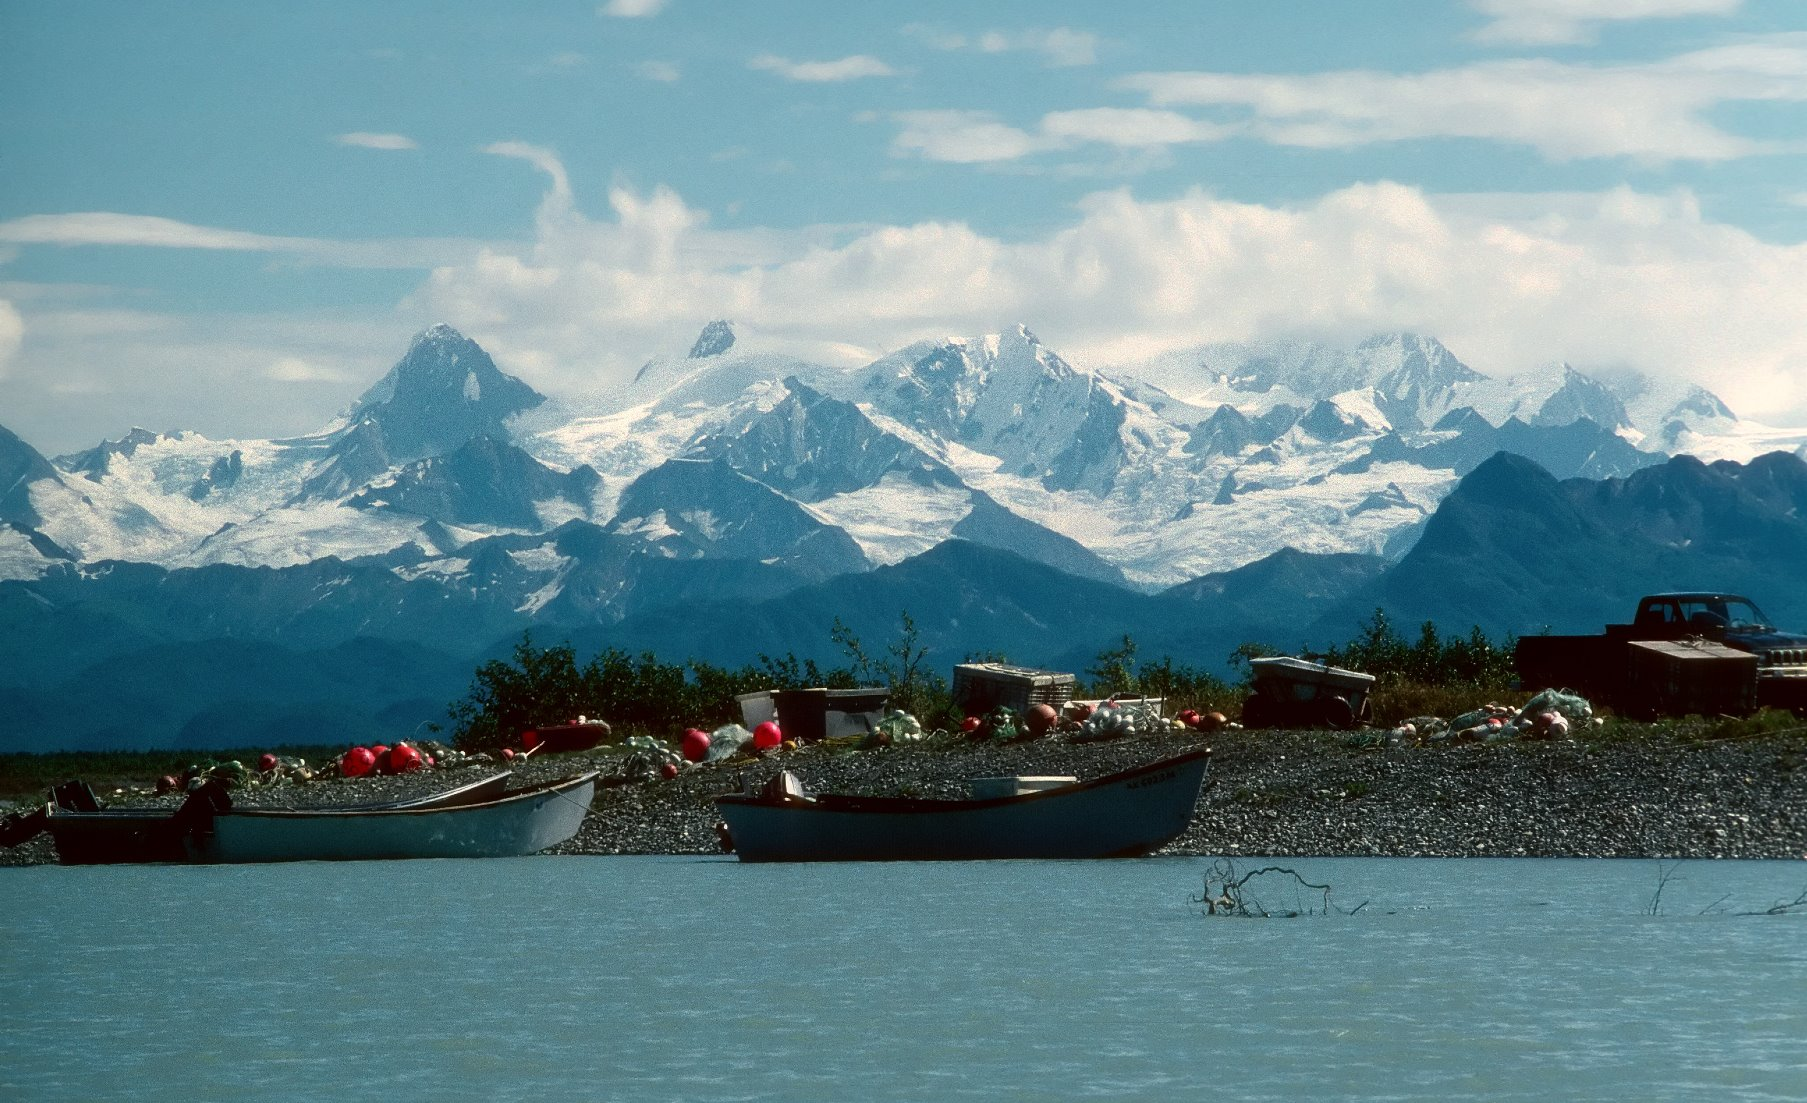 The Tatshenshini-Alsek river ends in Dry Bay